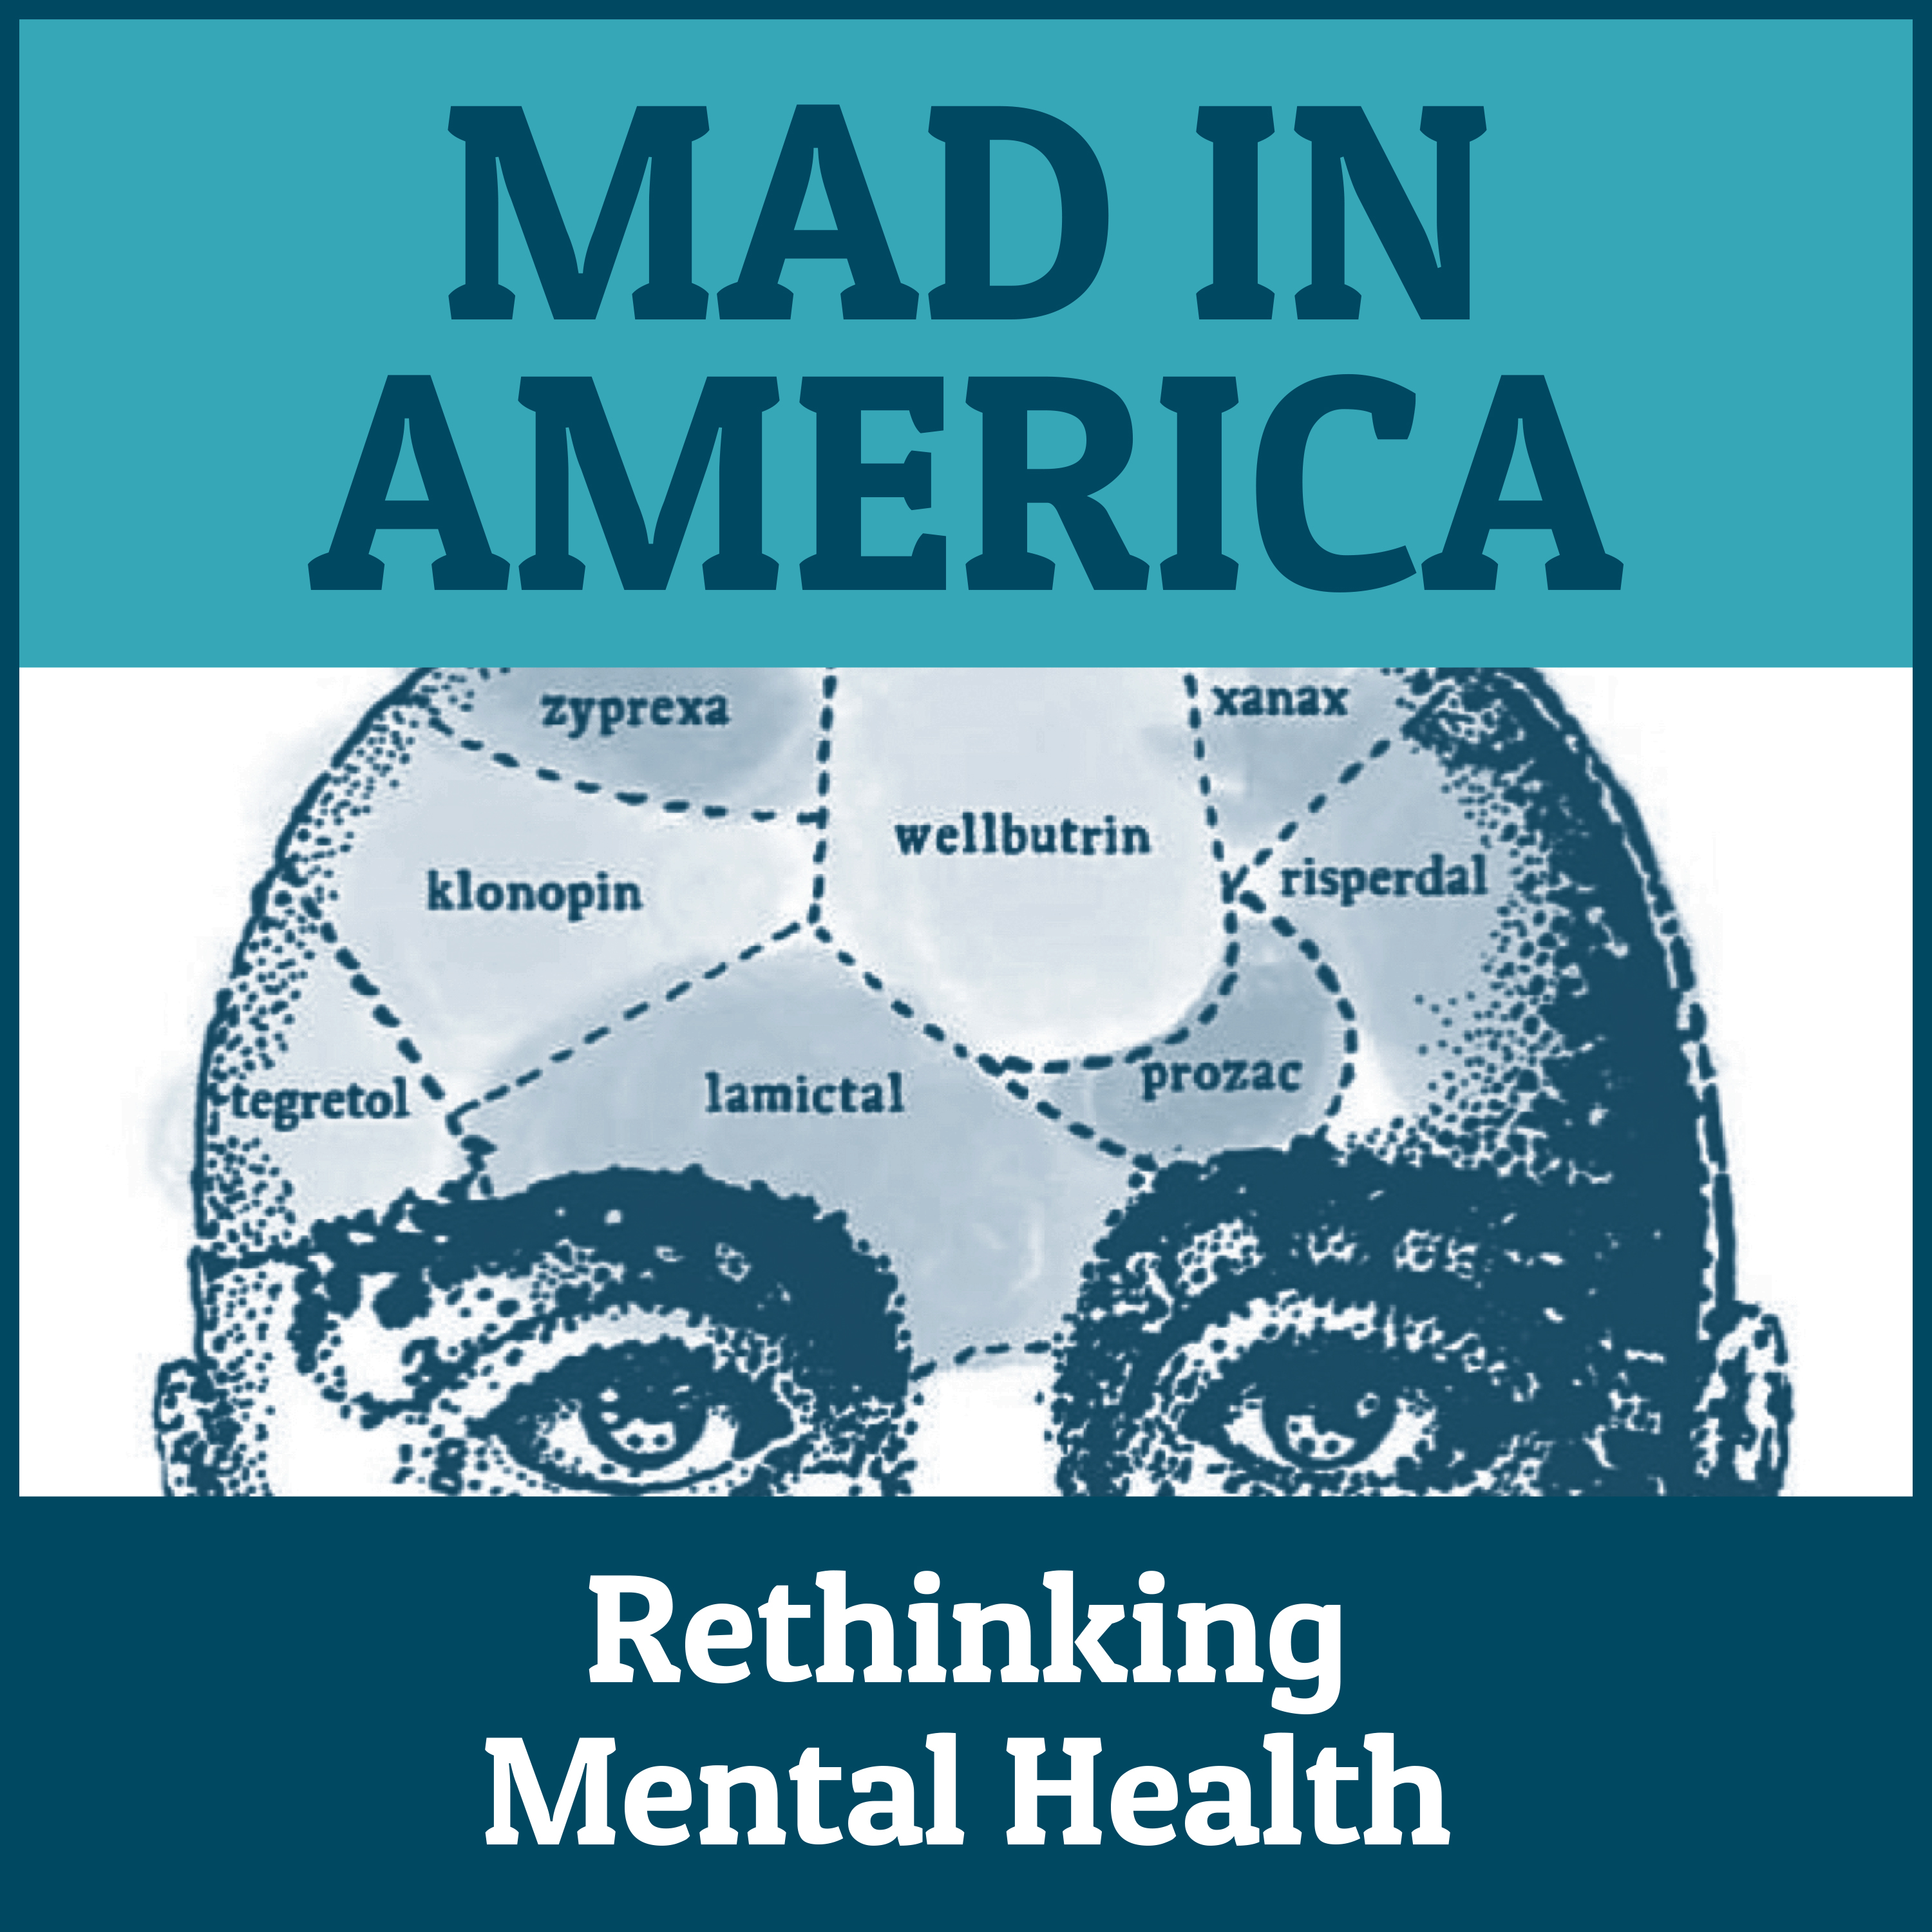 Mad in America: Rethinking Mental Health - Julia Rucklidge - Nutrition and Mental Health